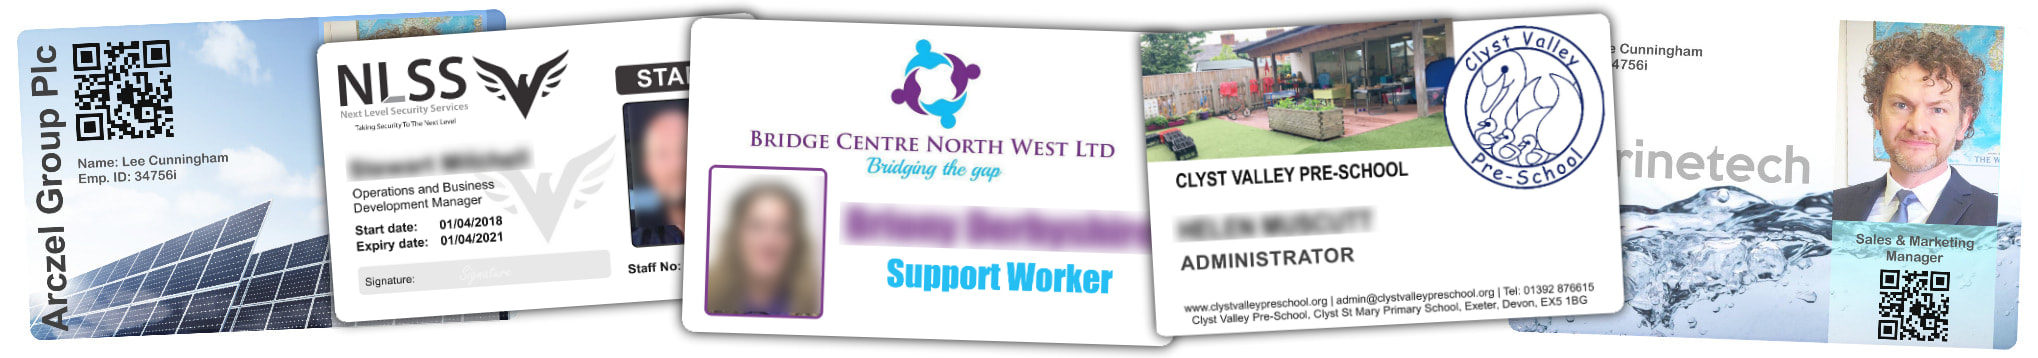 Luton examples of staff photo ID cards | samples of employee Identity card printing | Workers ID cards printed in Bedforshire